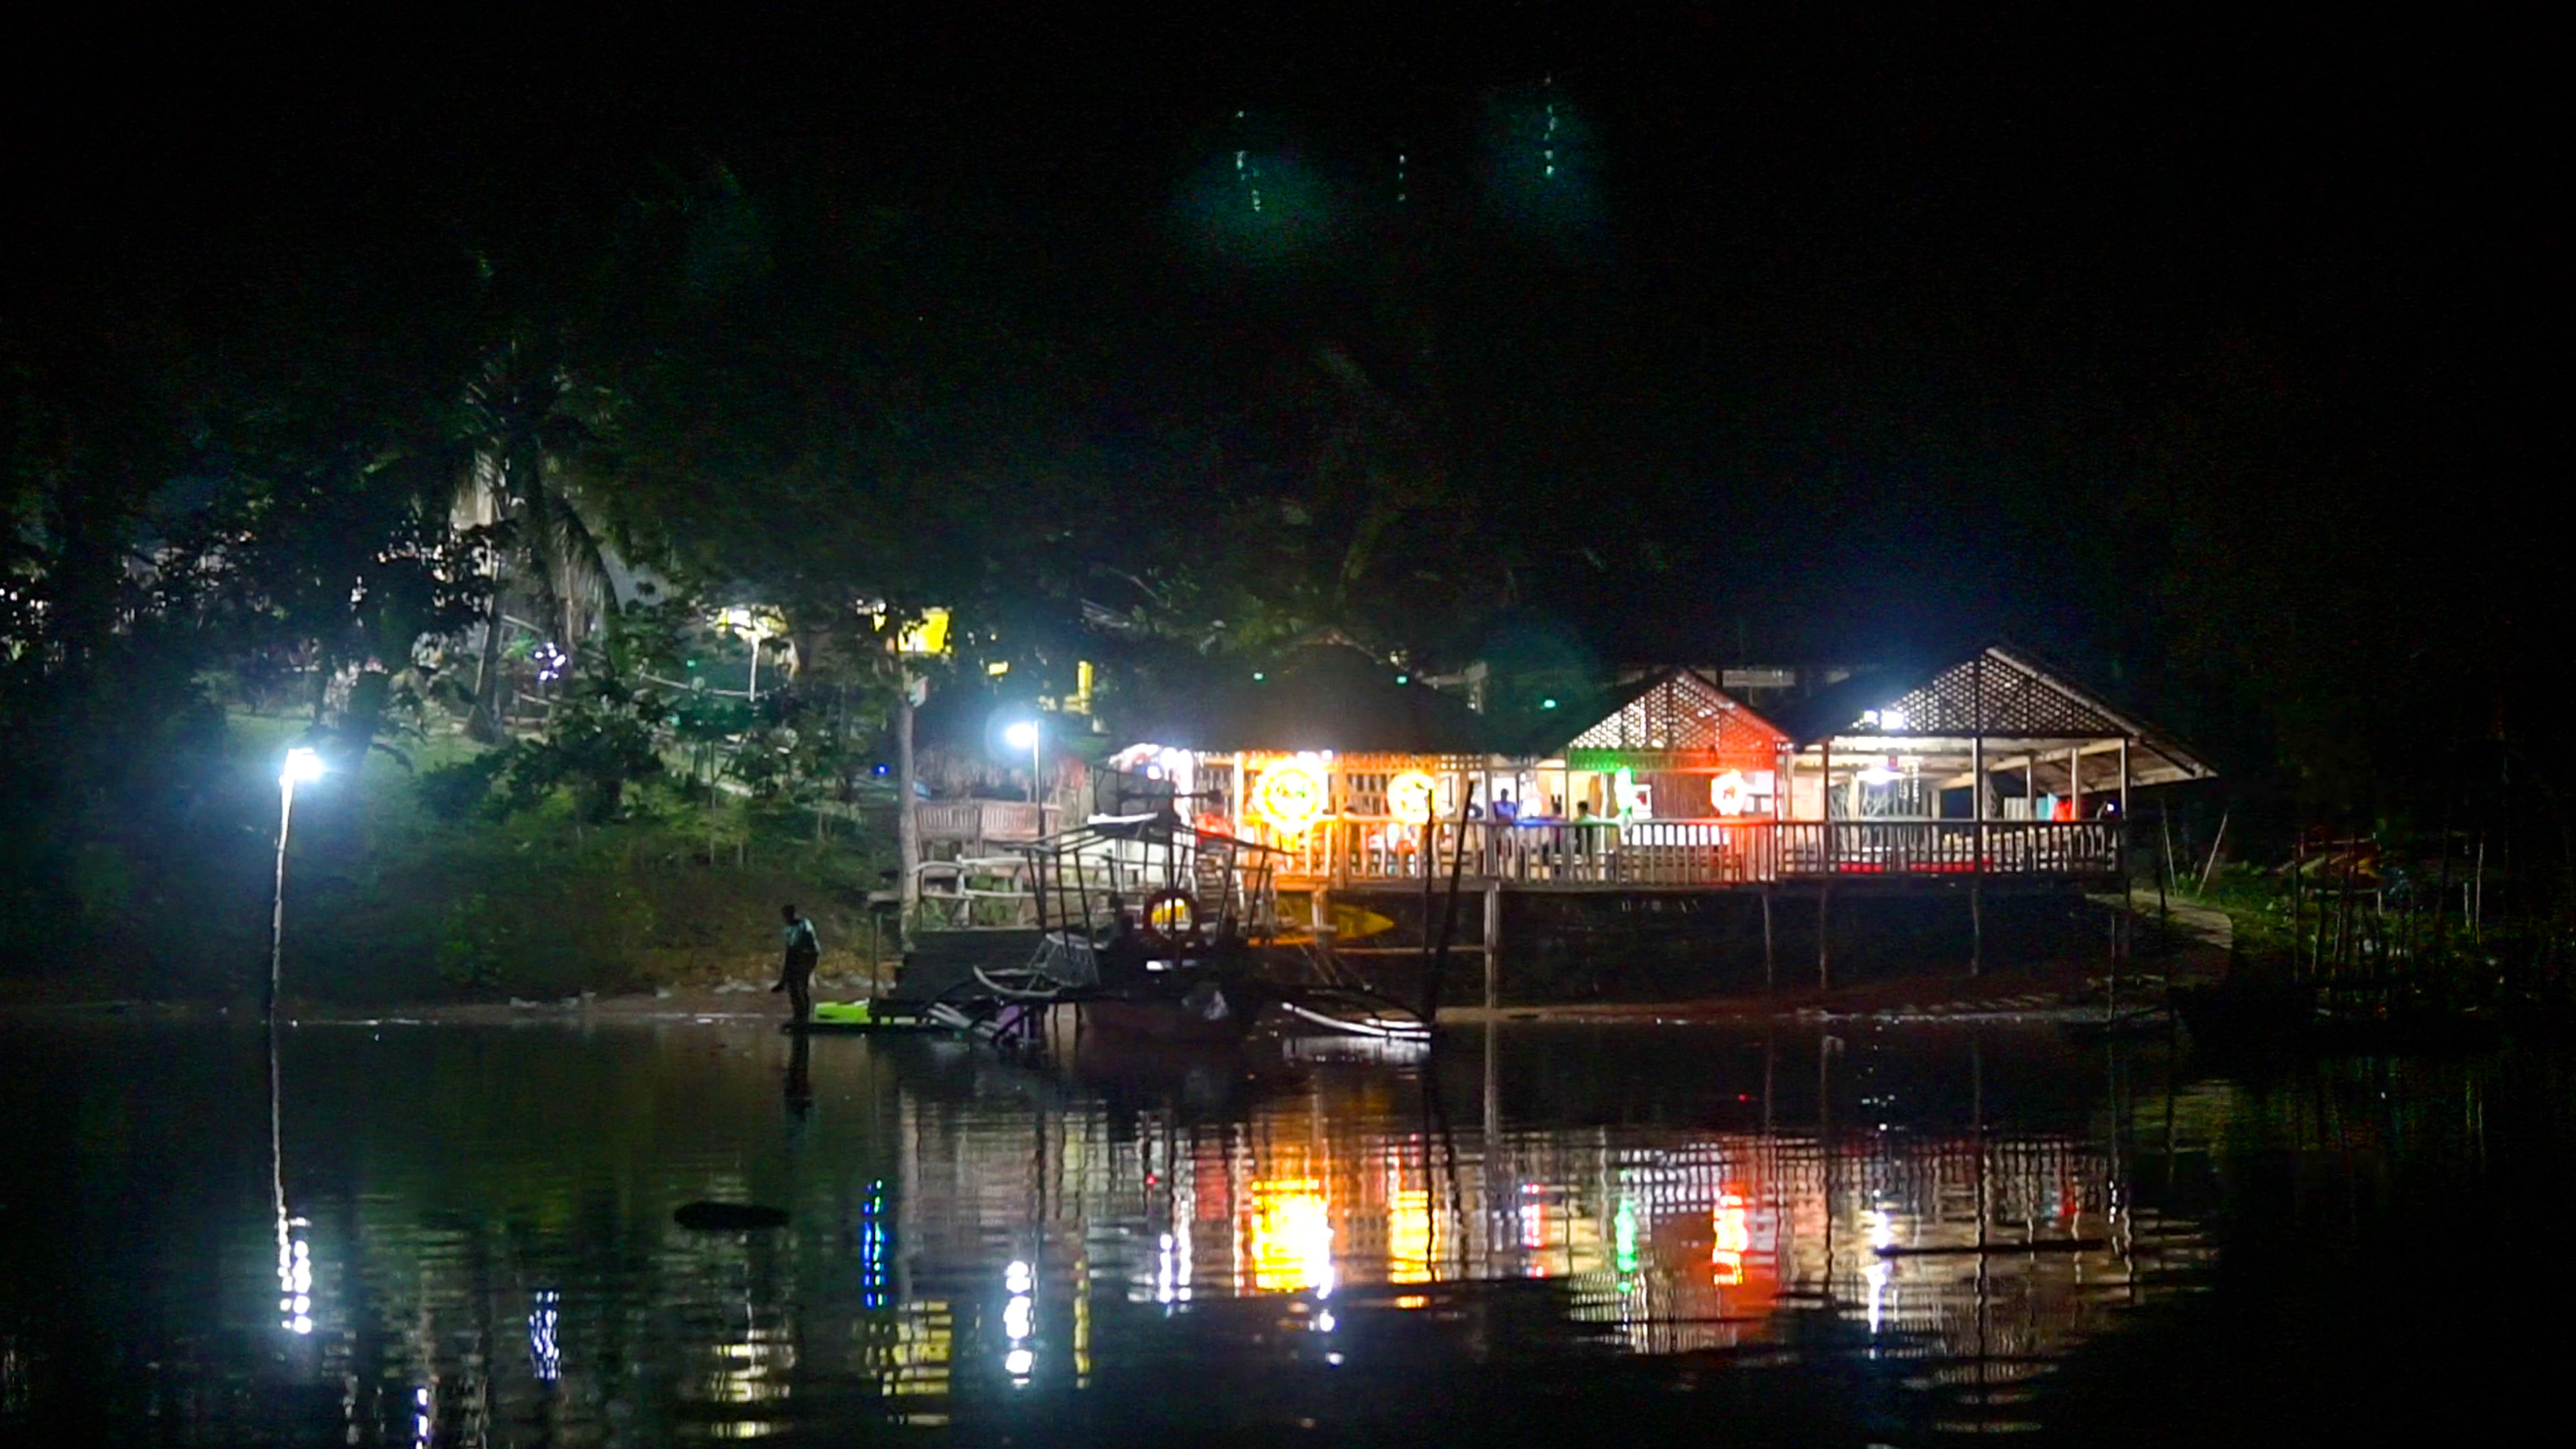 A boat with colorful lights floating on a river in Bohol